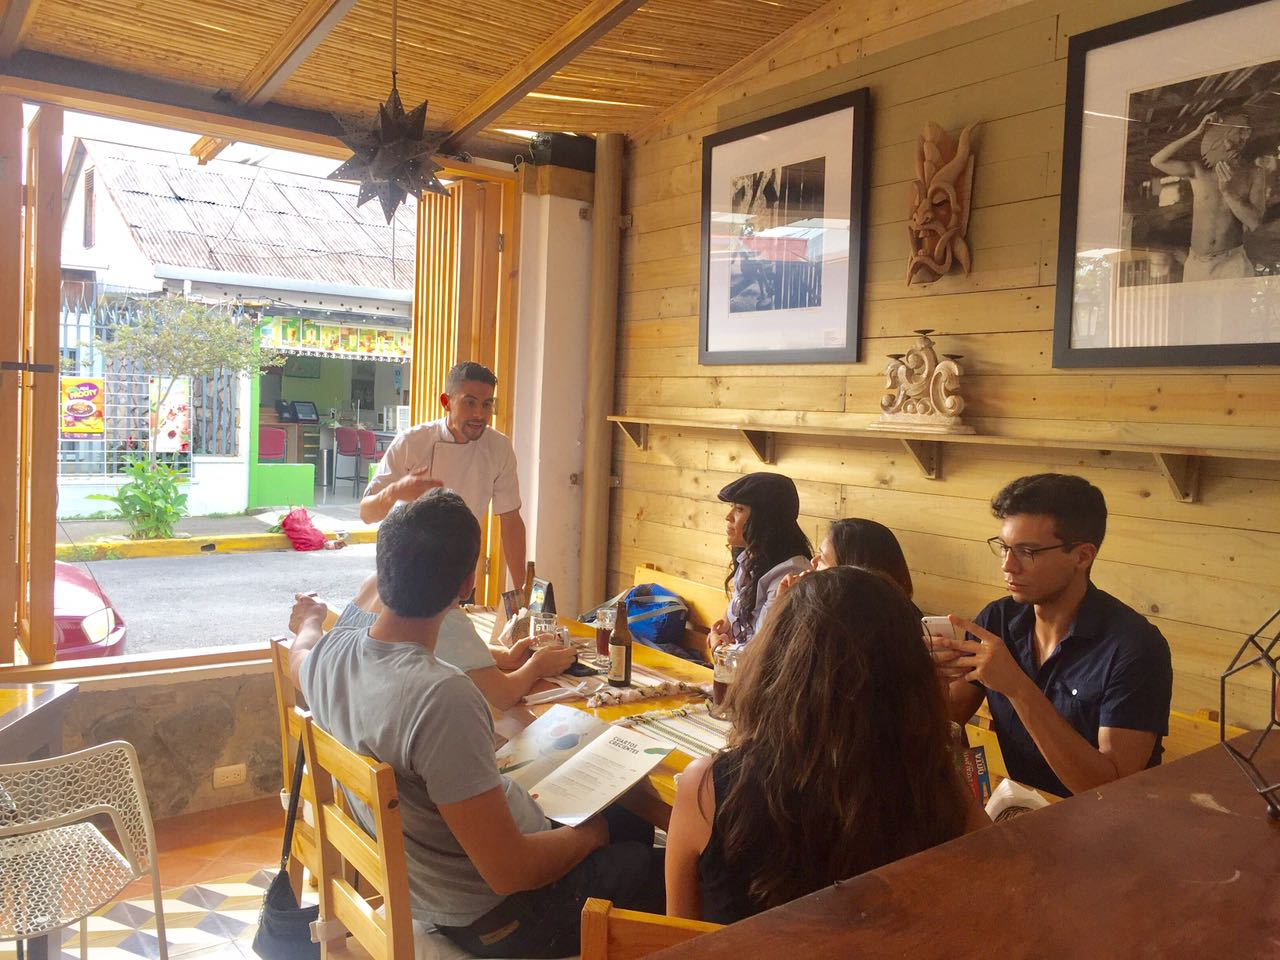 Having the main dish of traditional food during our gastronomical experience